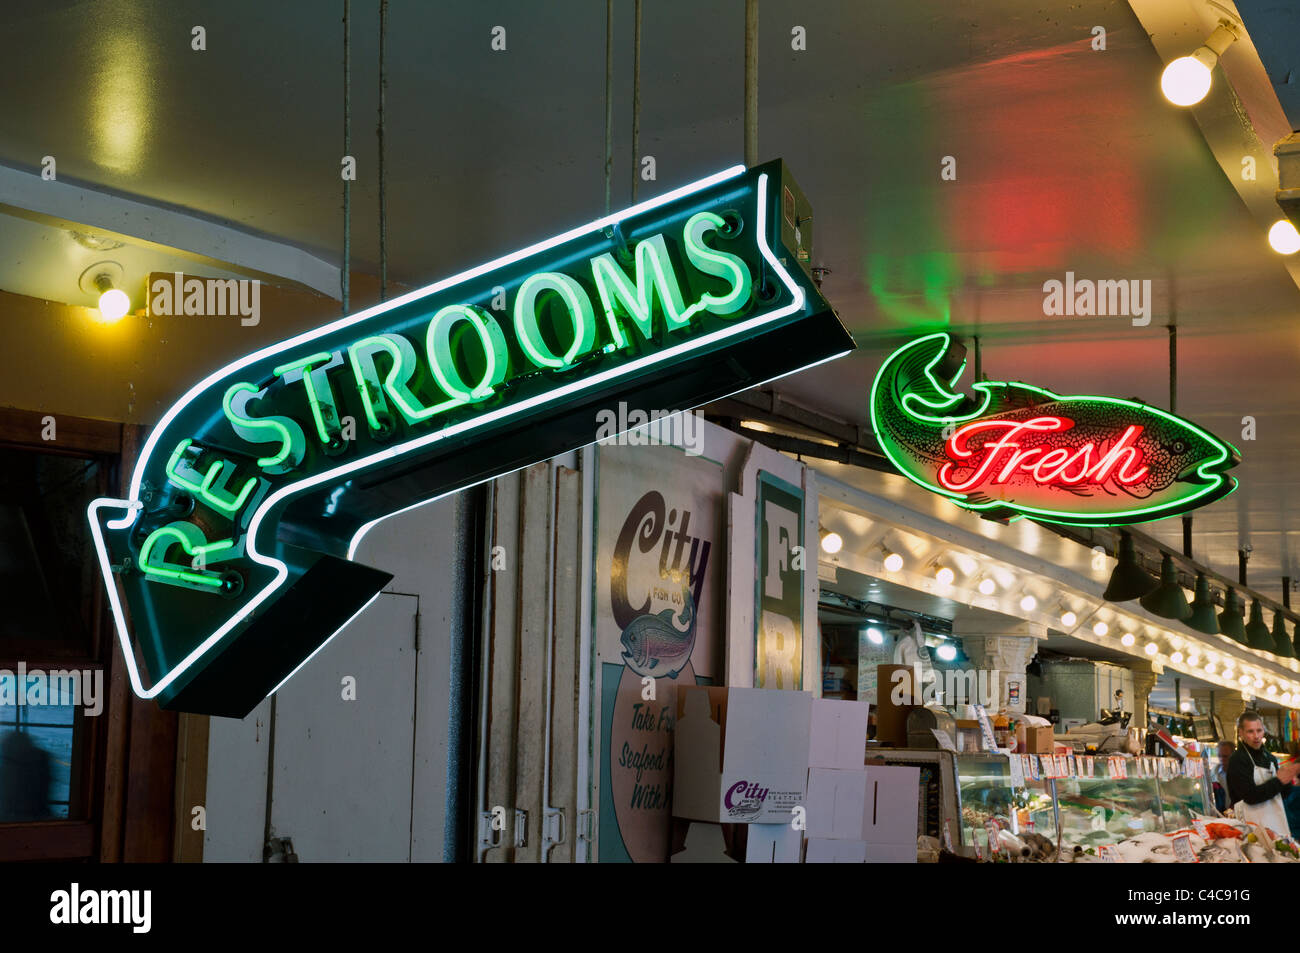 Neon signs indicating restrooms and fresh fish, Pike Place Market, Seattle, Washington, USA - Stock Image